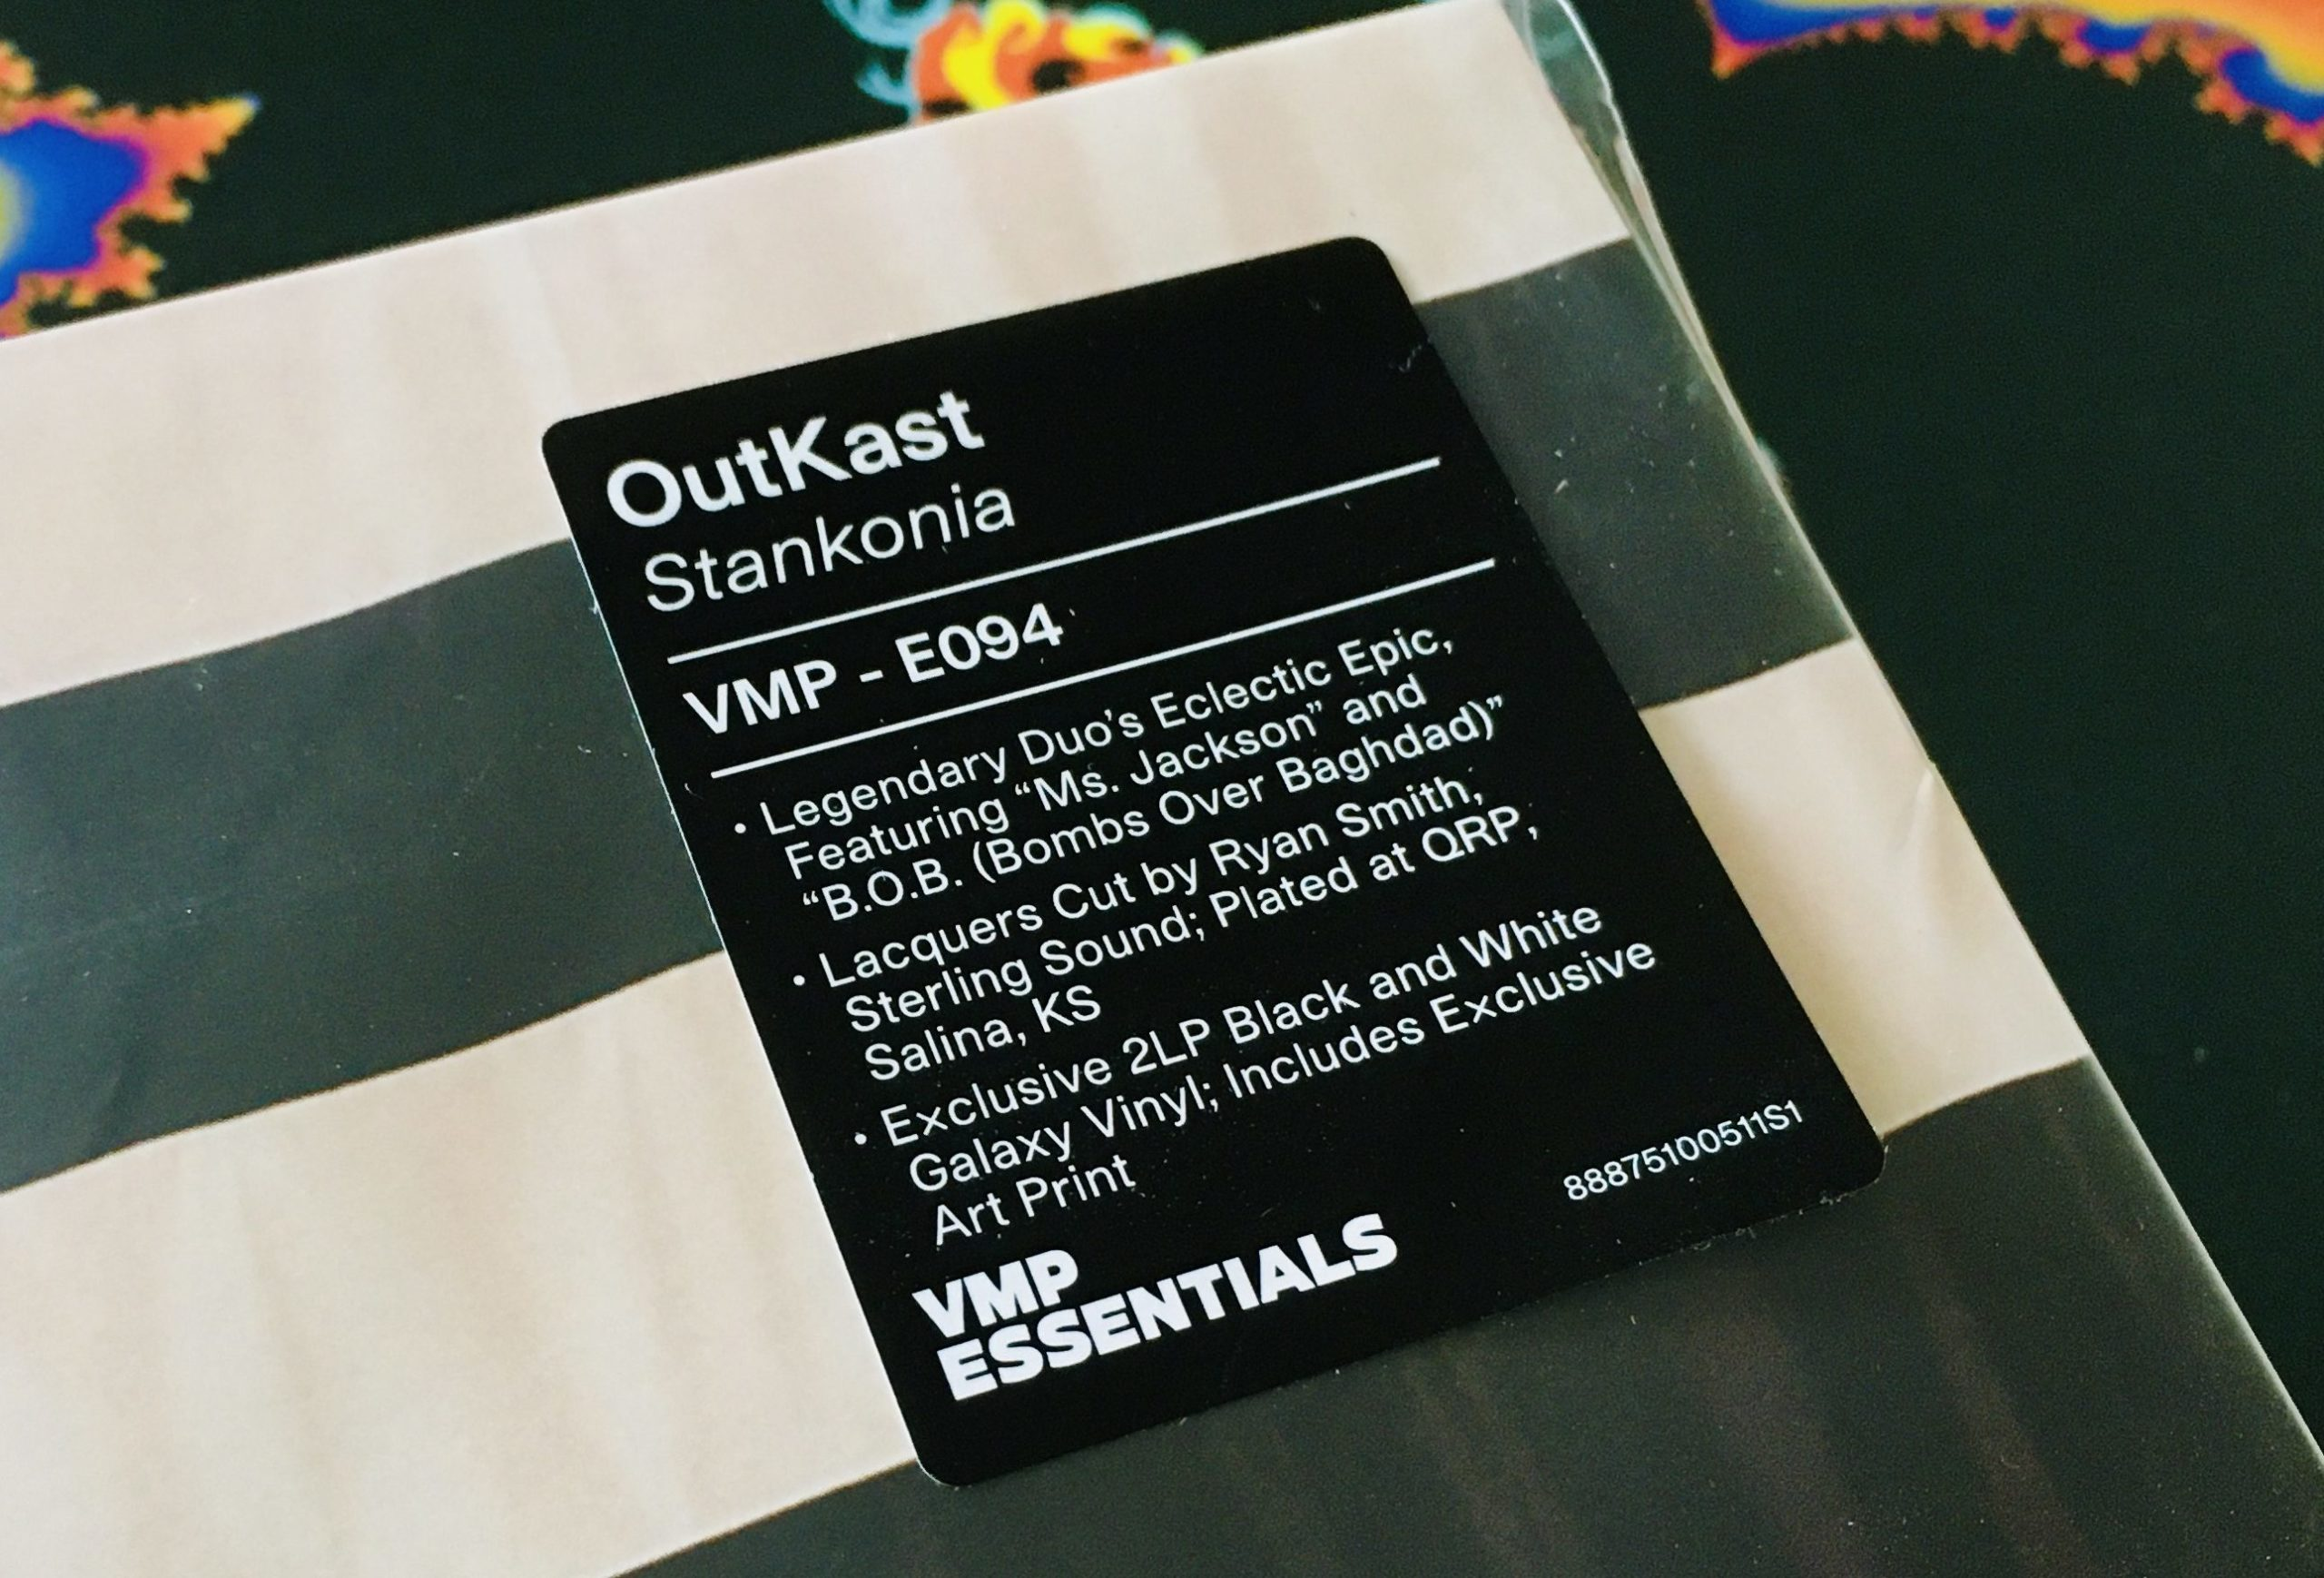 Geek insider, geekinsider, geekinsider. Com,, vinyl me, please october edition: outkast - stankonia, culture, entertainment, featured, geek life, music, reviews